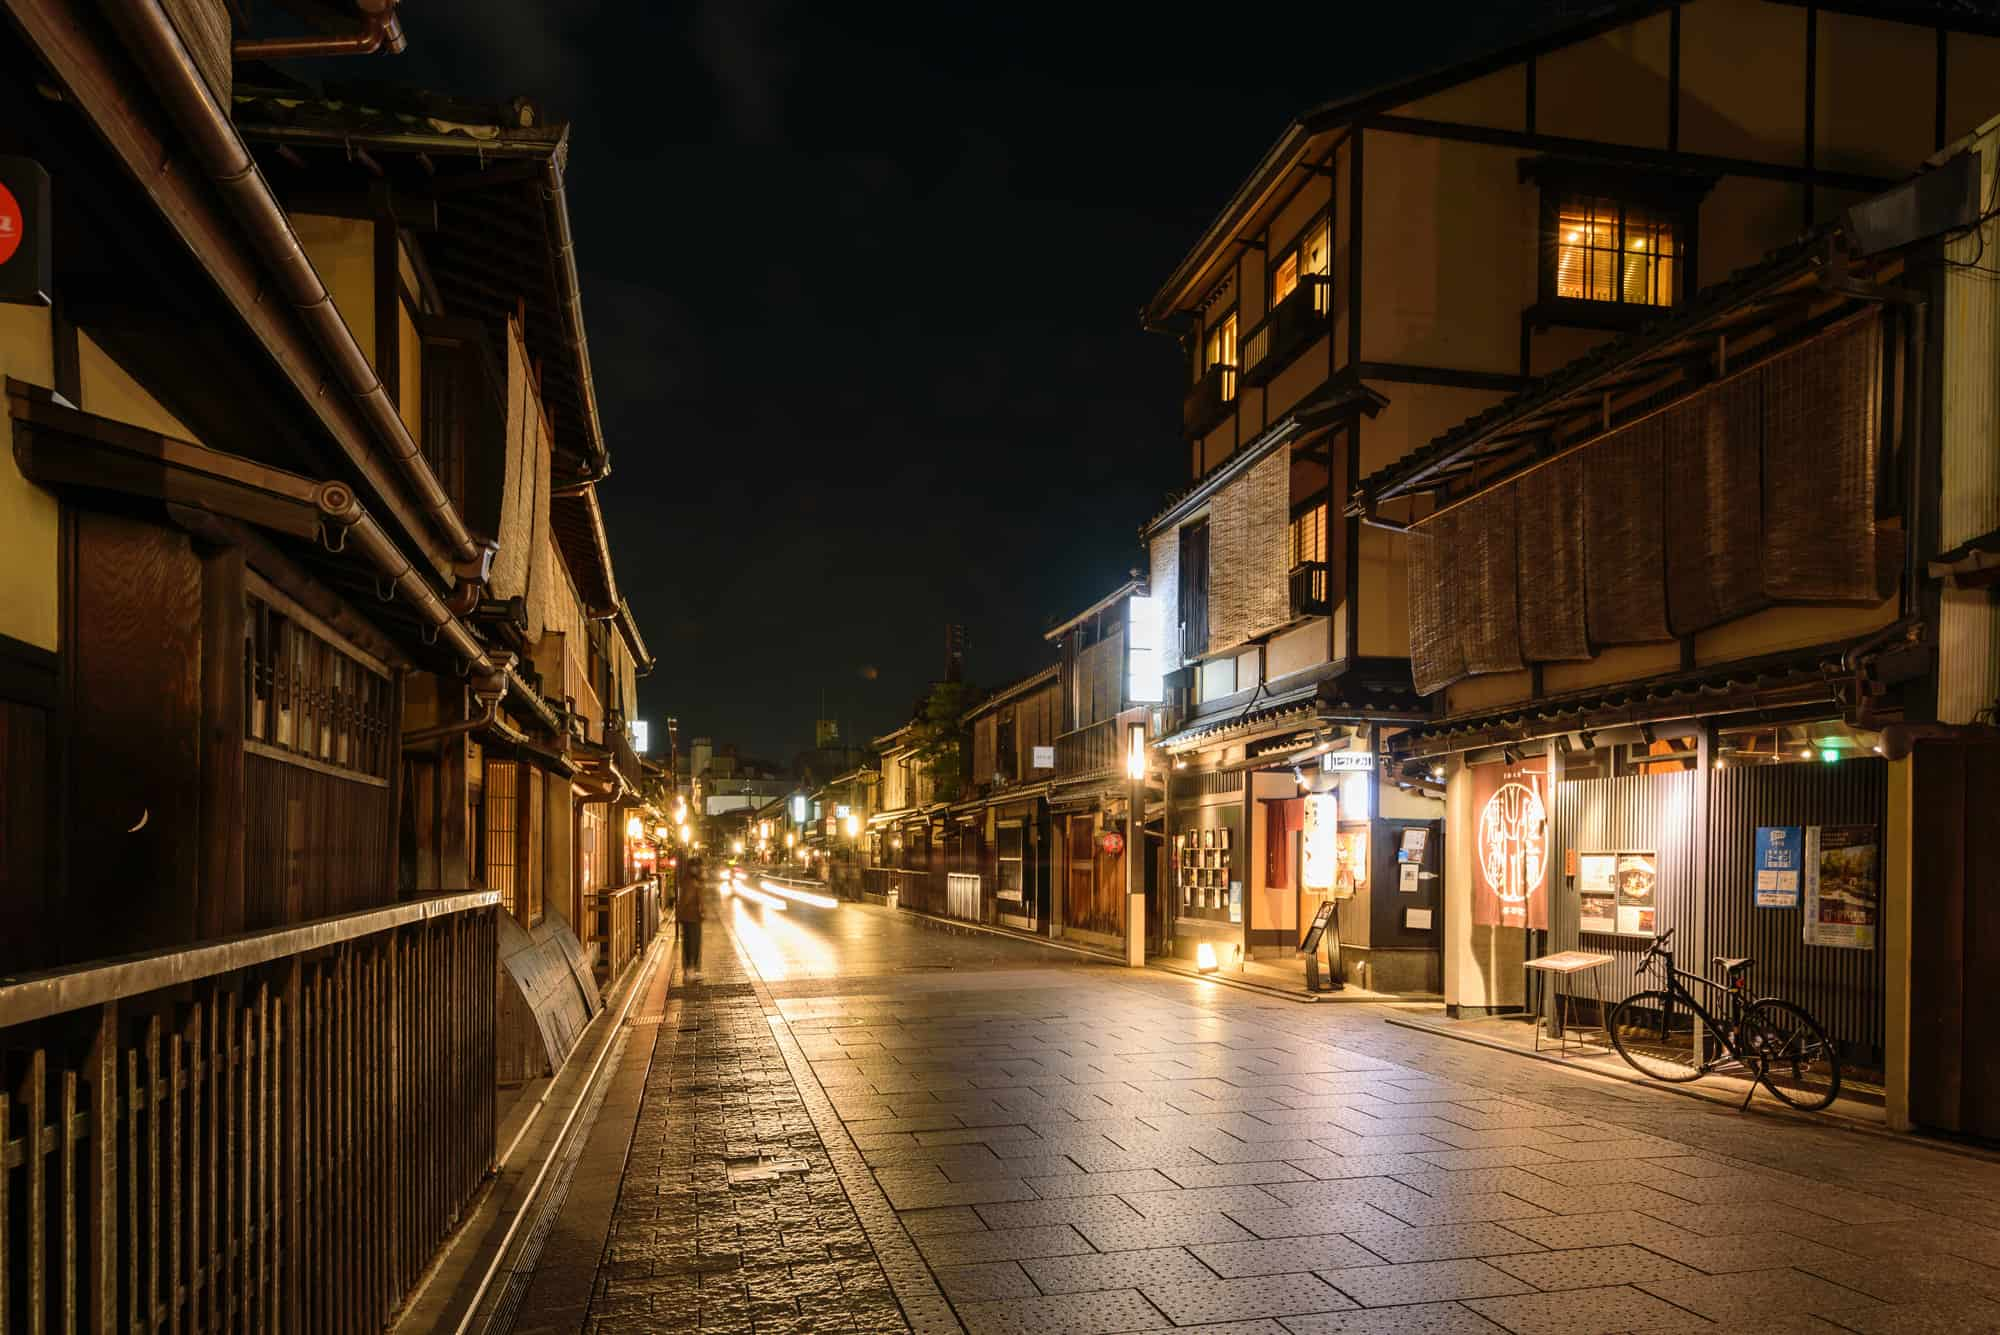 Japan - Kyoto - Gion District